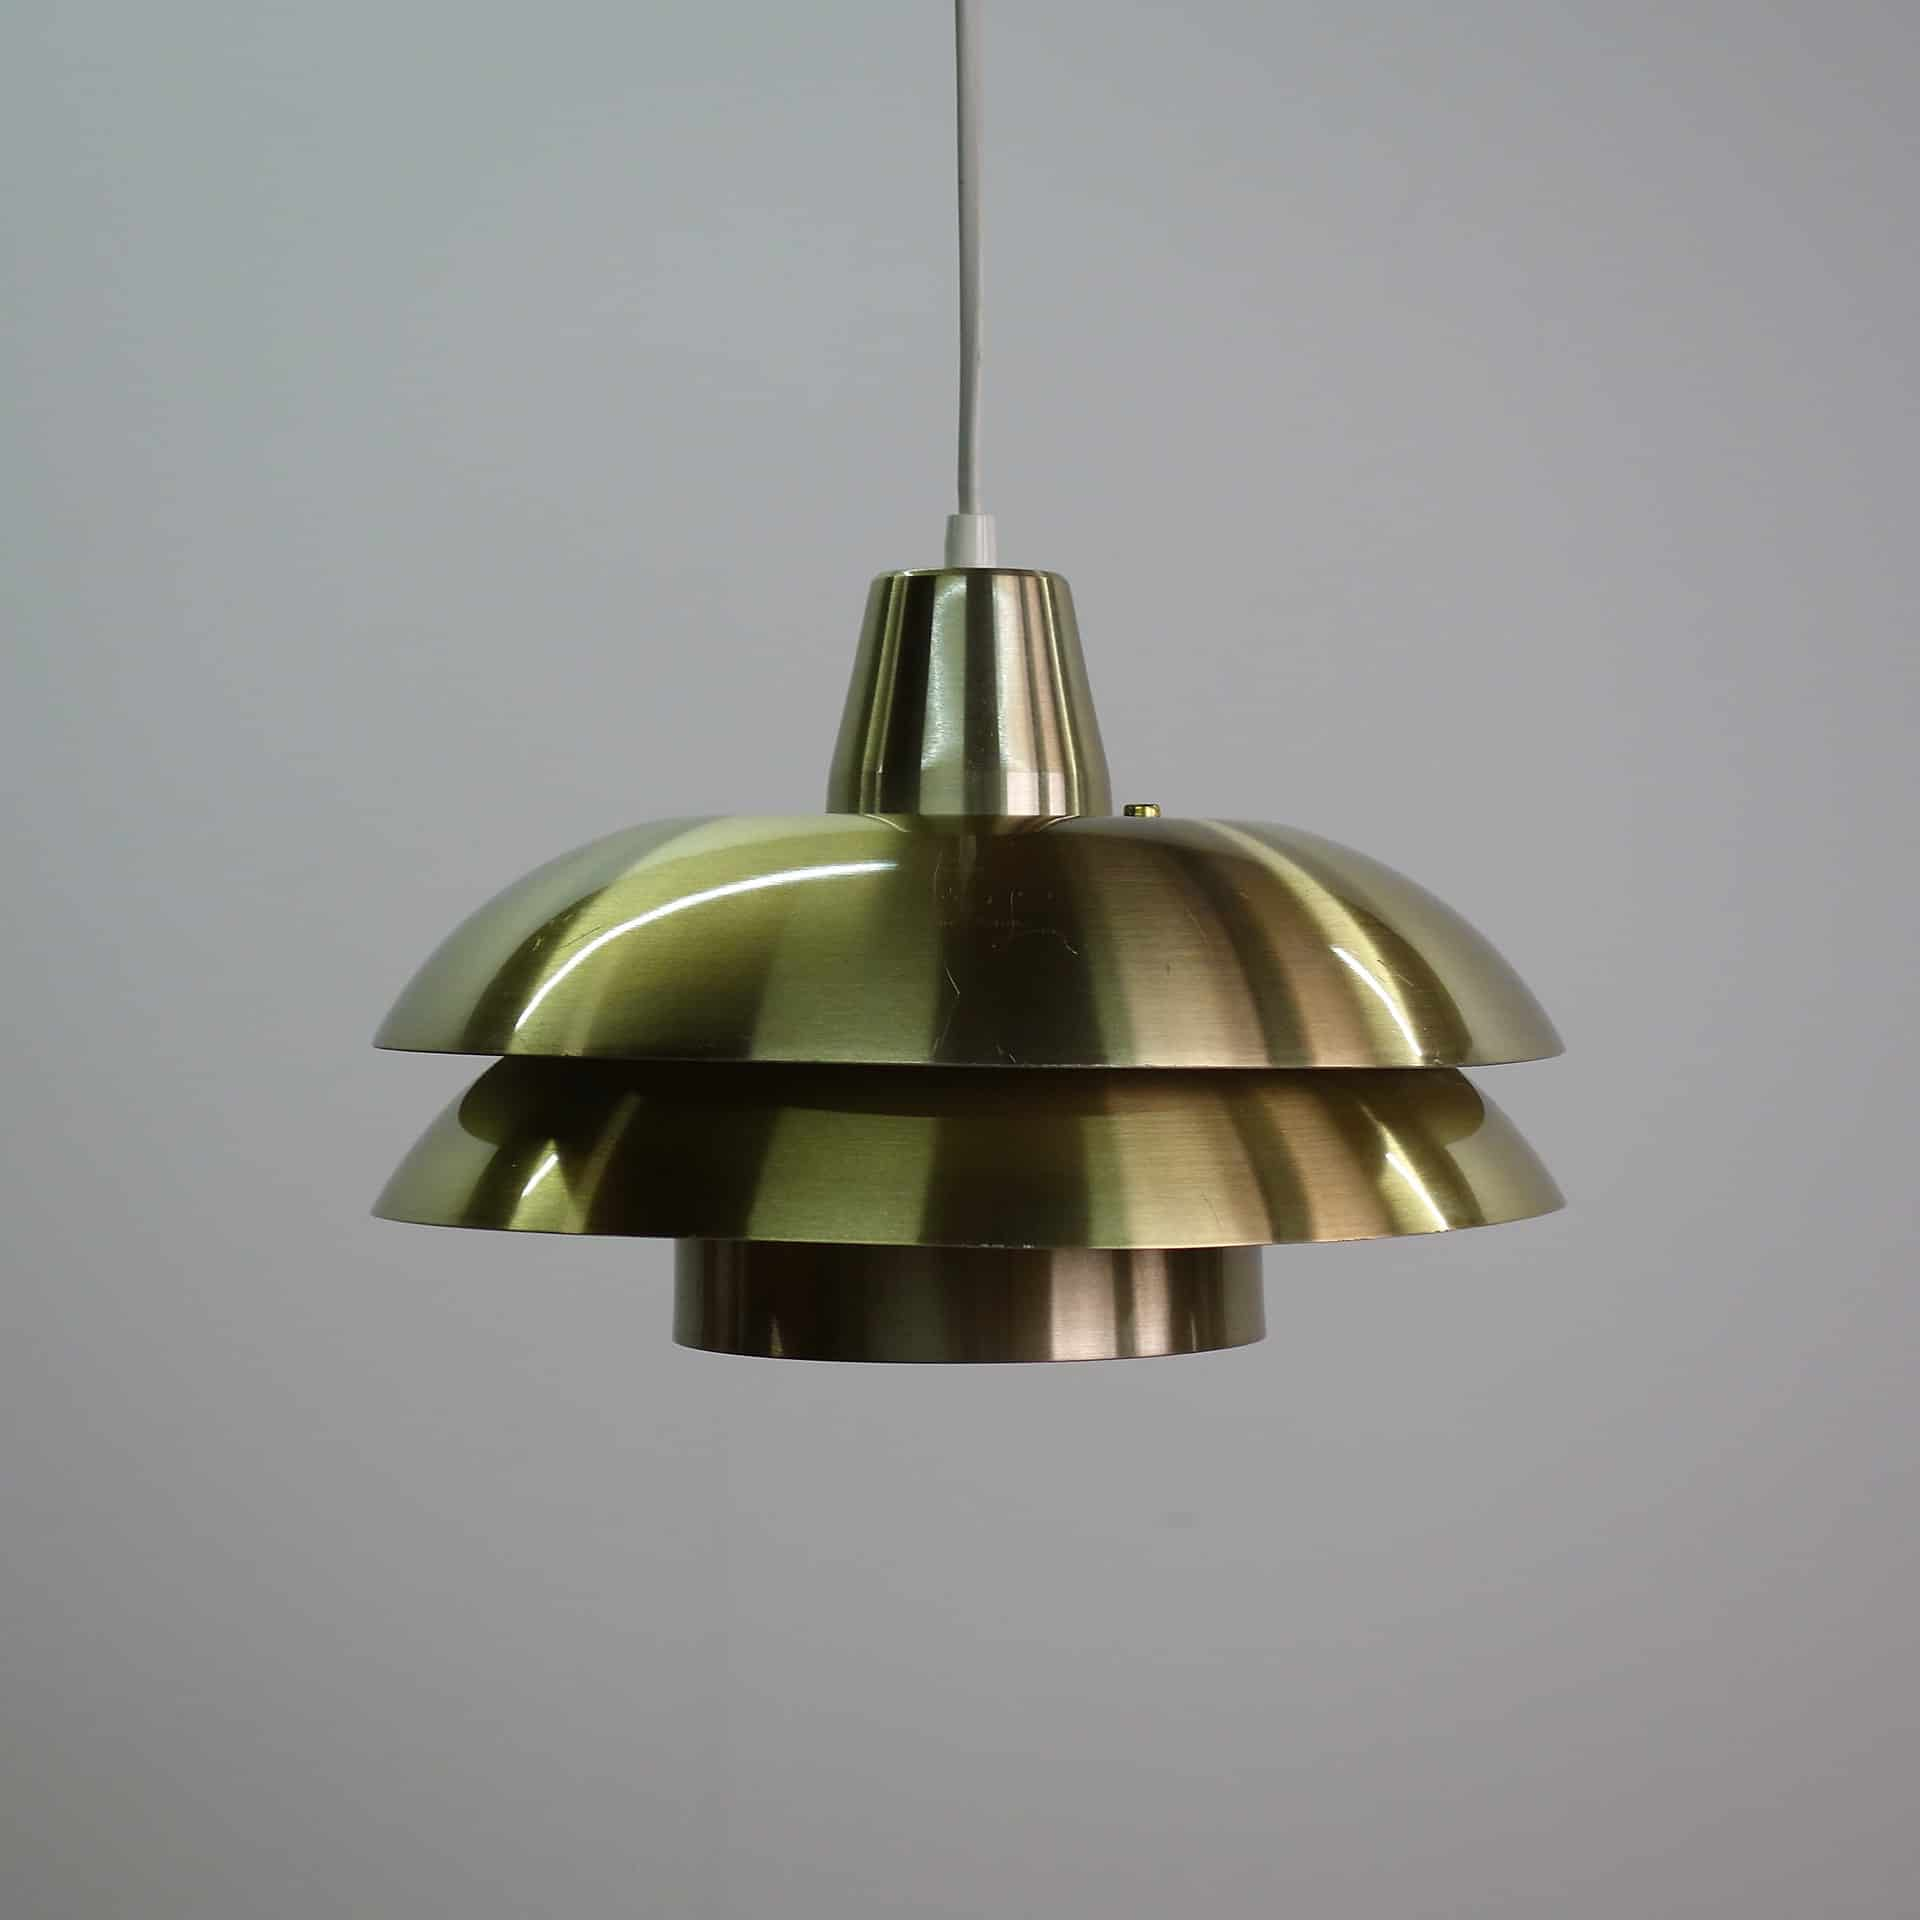 09 May Small Fog & Morup Style Brass Pendant Lamp